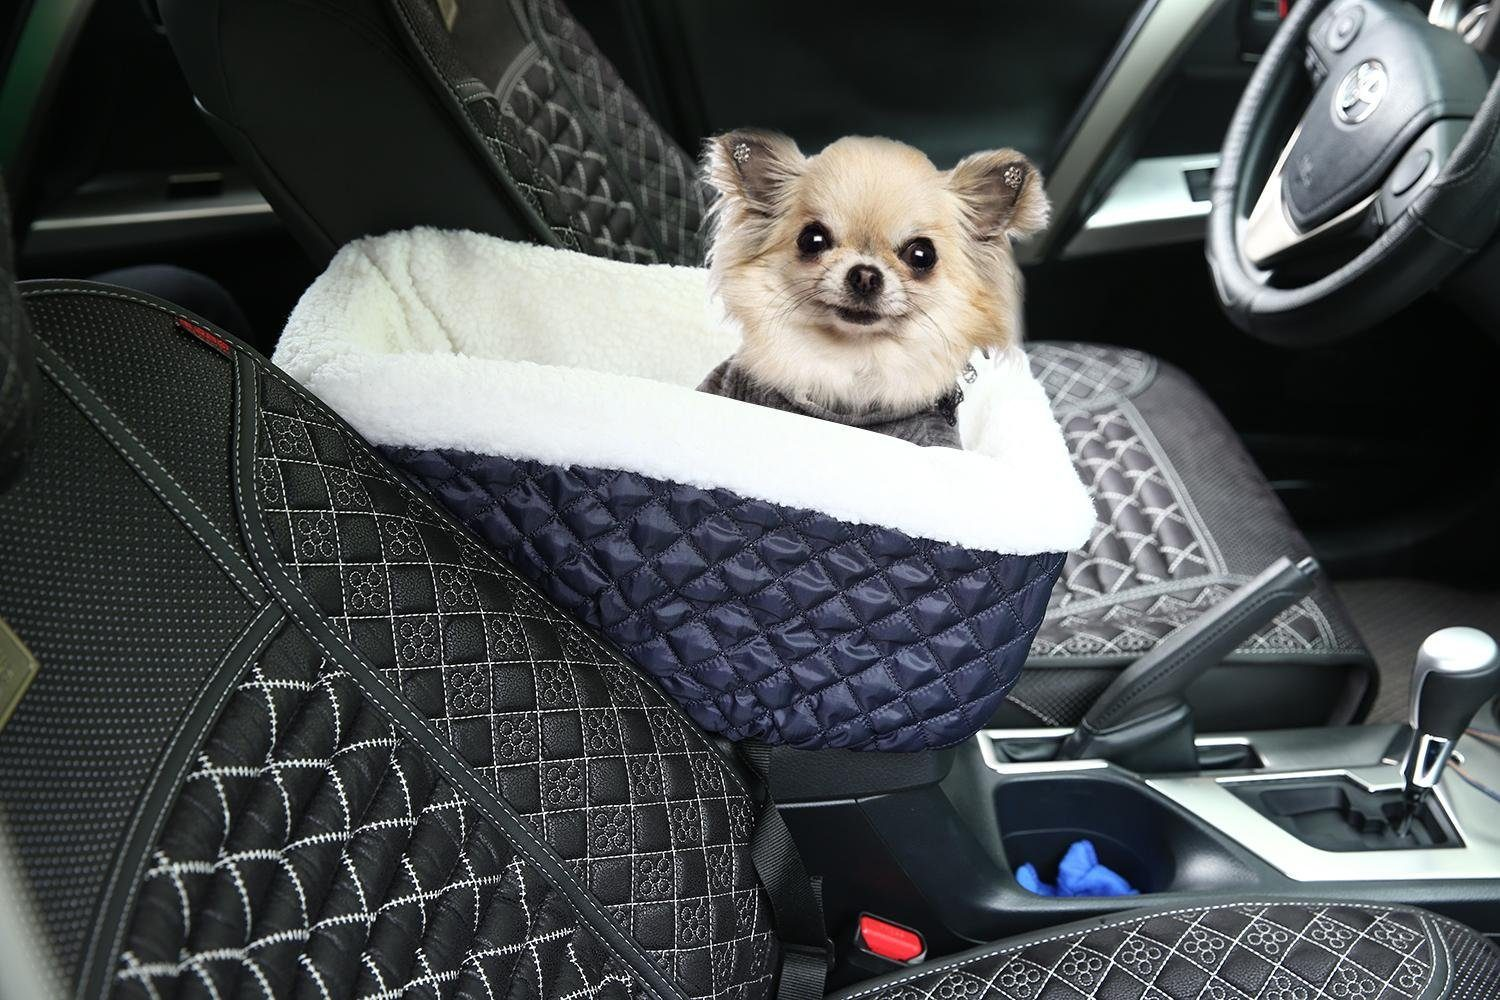 Kobwa Tm Console Dog Car Seat For Small Pets With Safety Belt